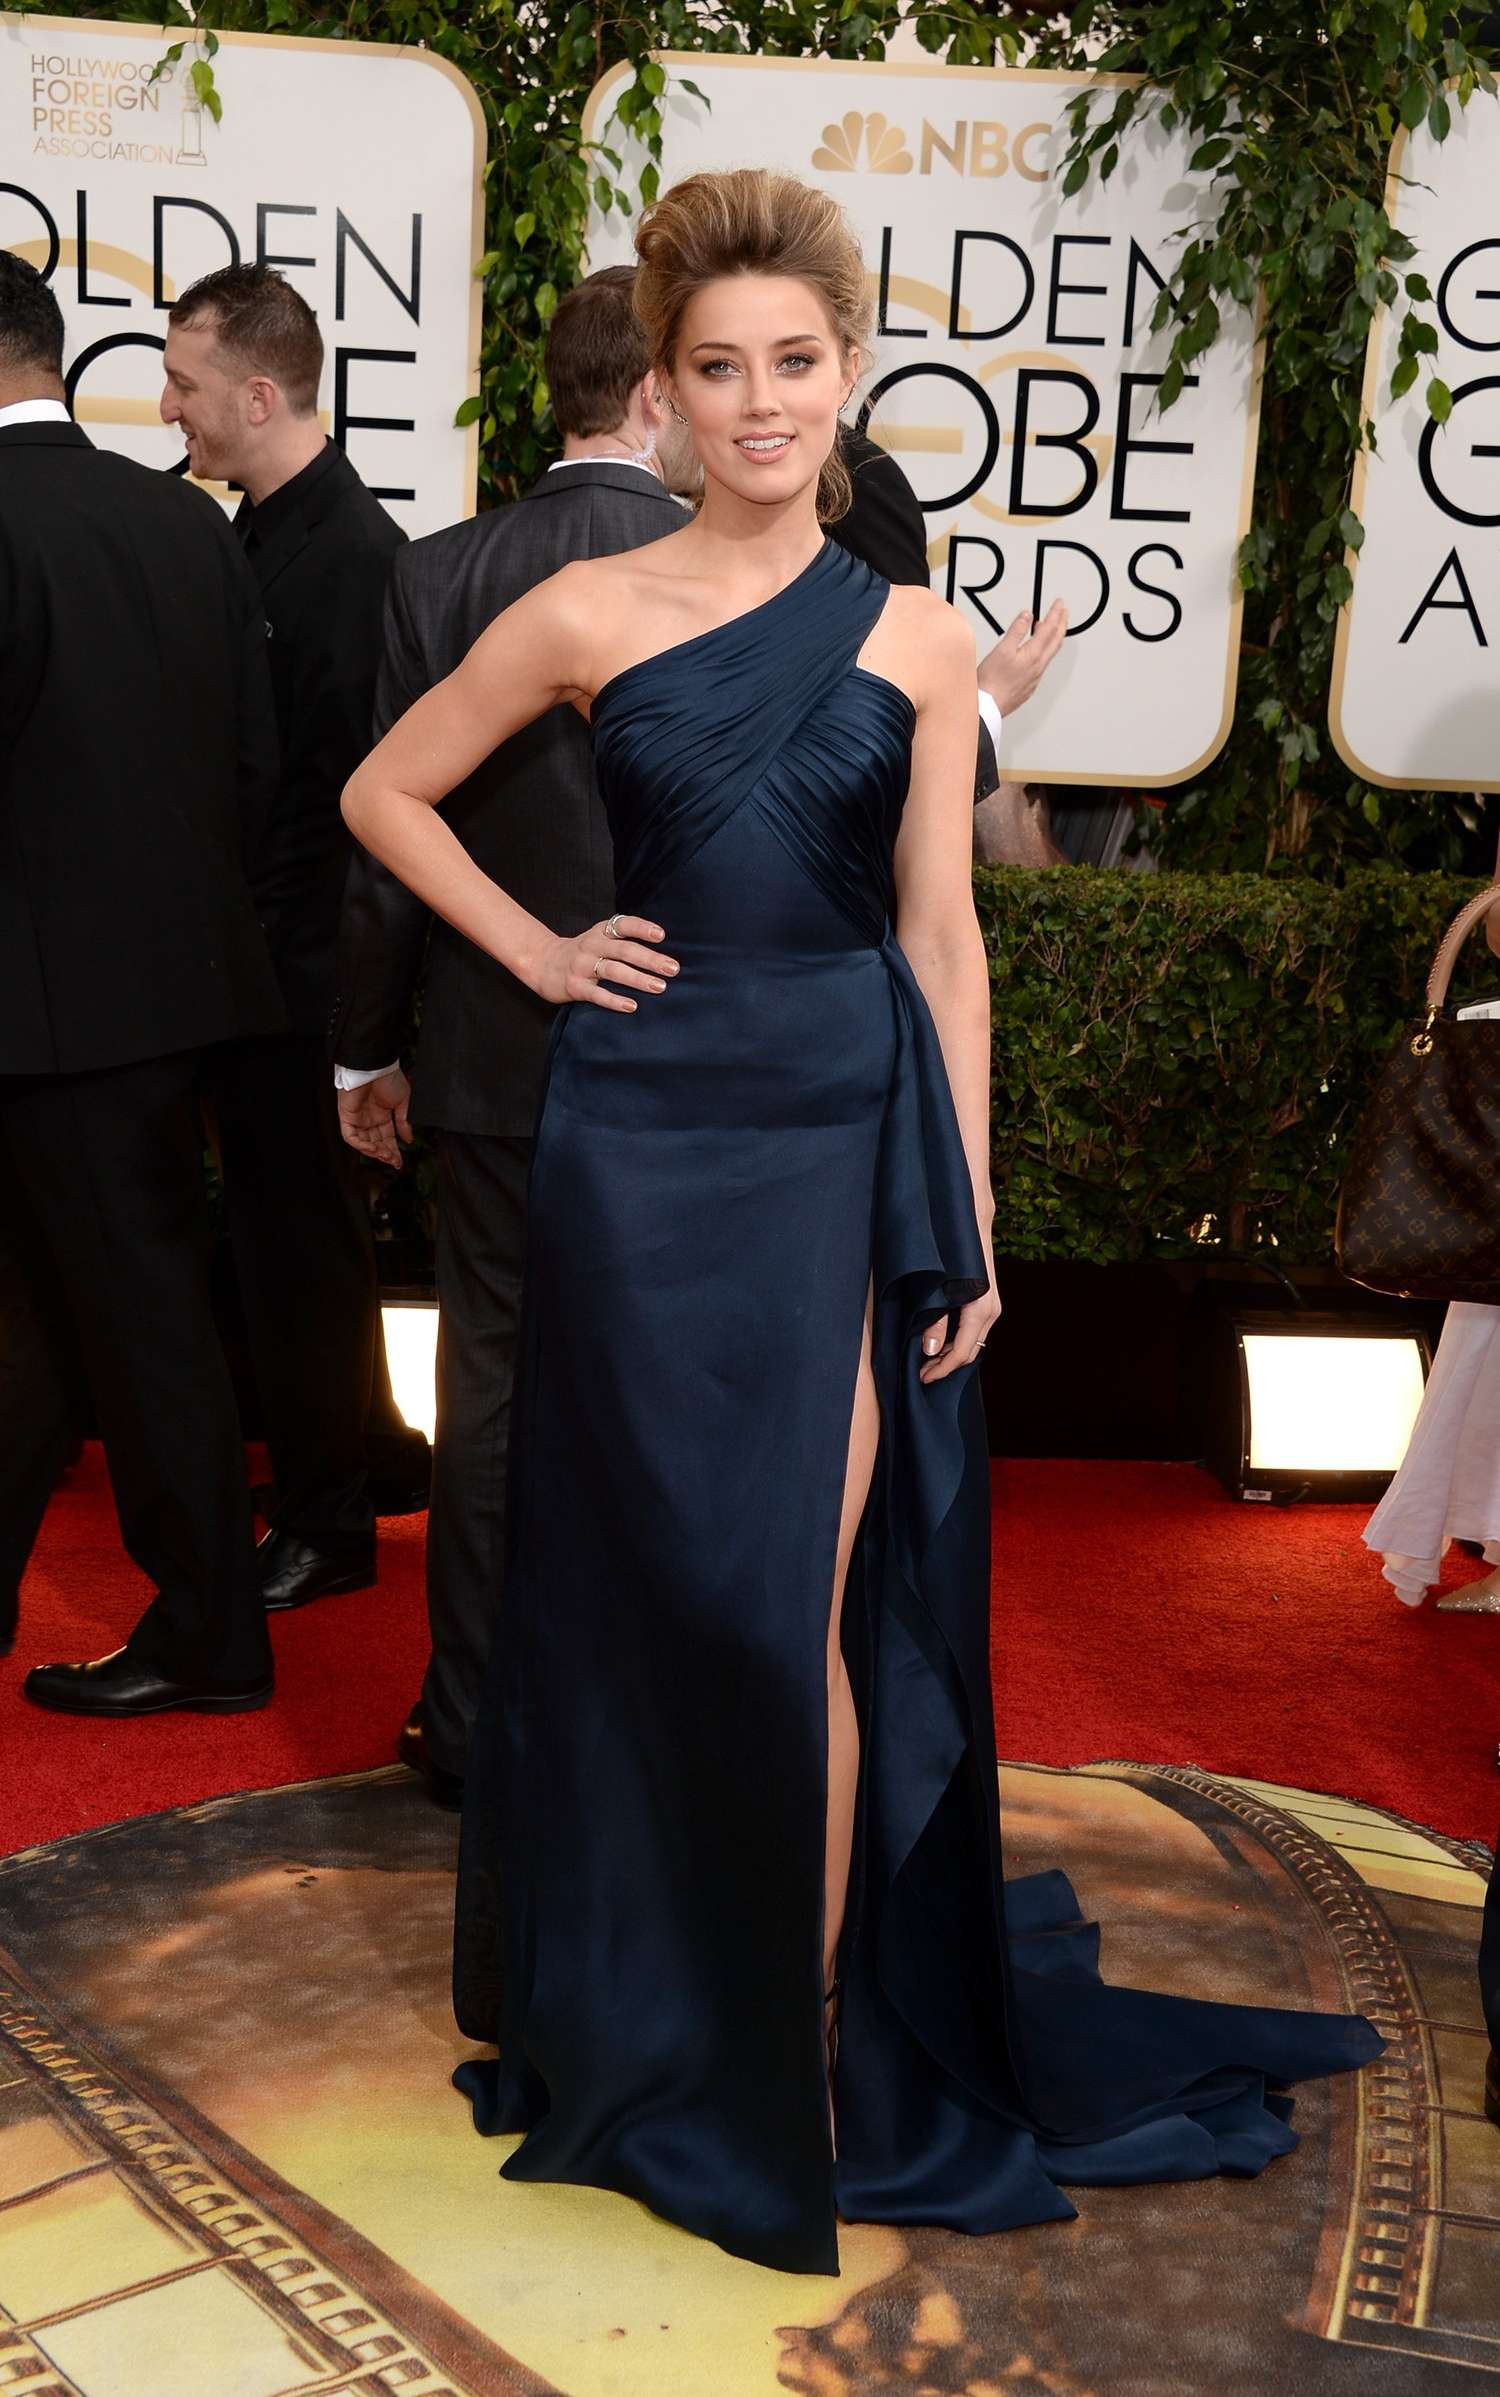 Amber Heard 2014 : Amber Heard: Golden Globe 2014 Awards -02